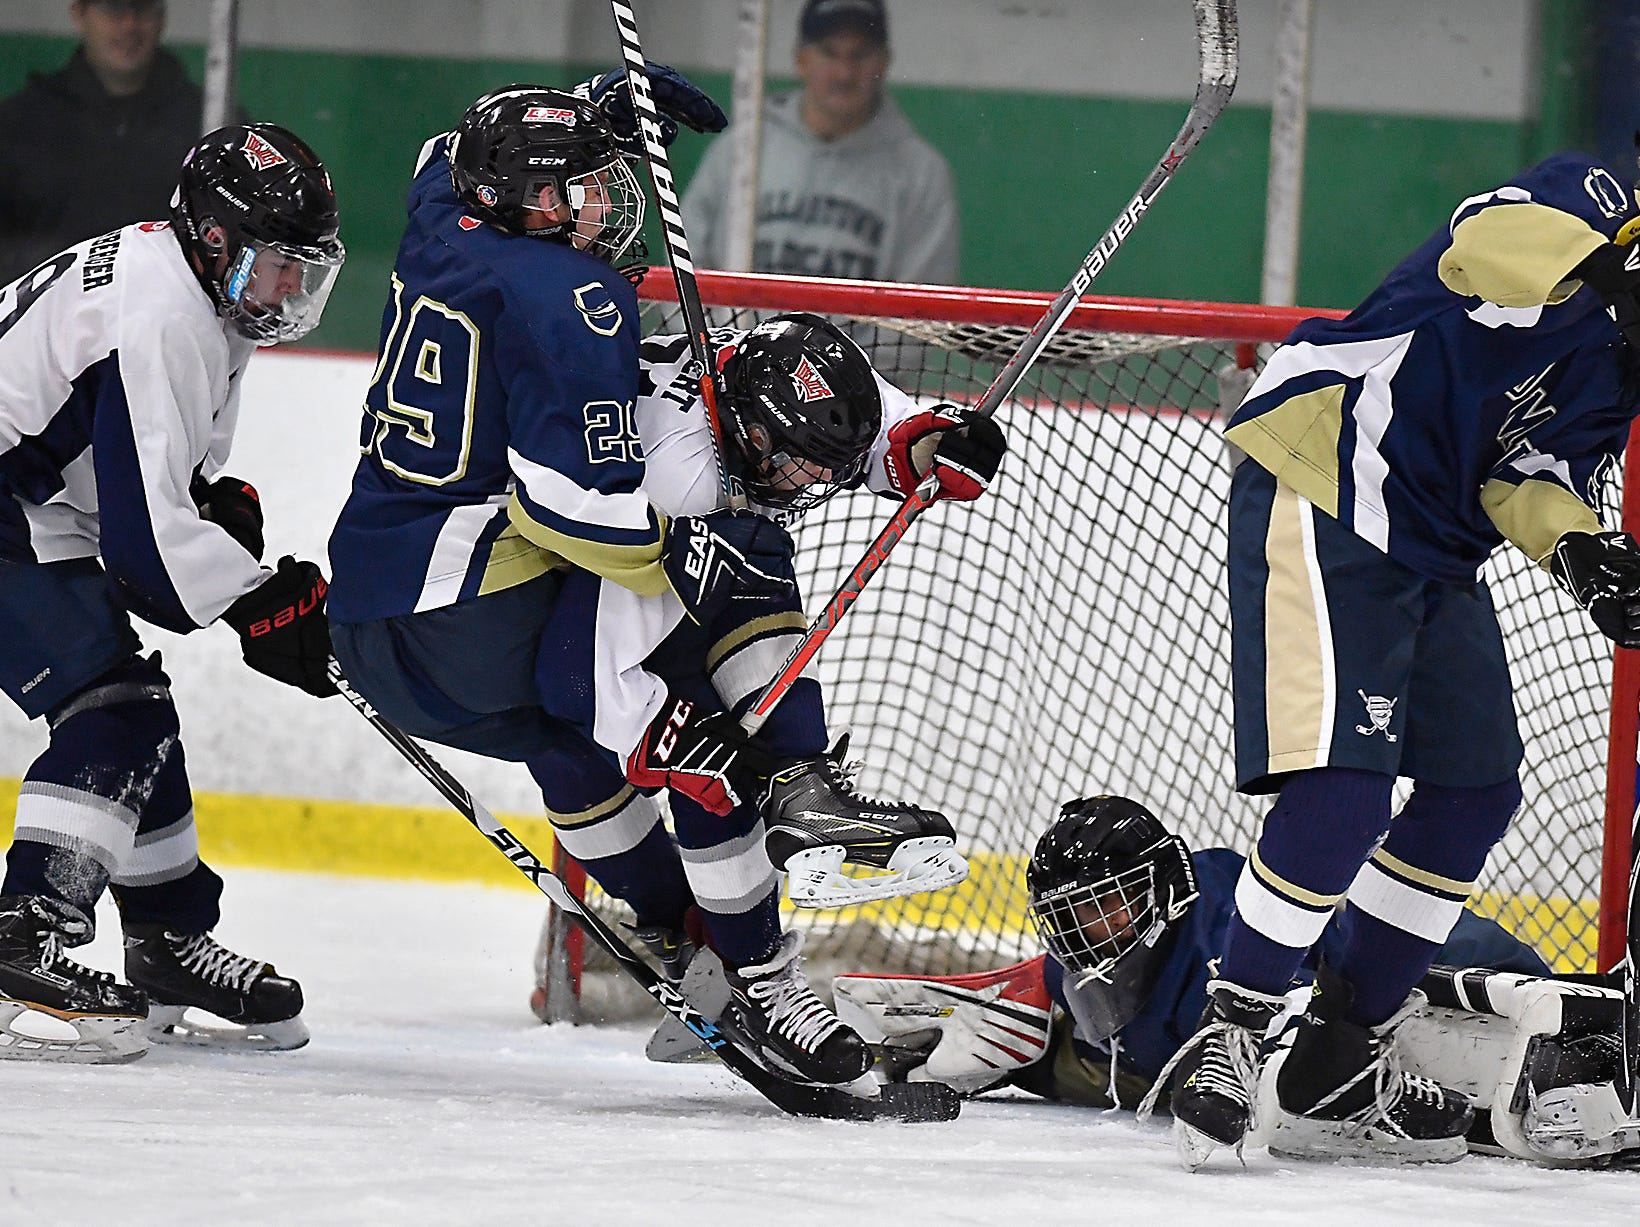 Jake Jesberger of Penn Manor and Quinn Eckert of Dallastown get tangled up in front of the Dallastown goal, Monday, November 26, 2018.John A. Pavoncello photo